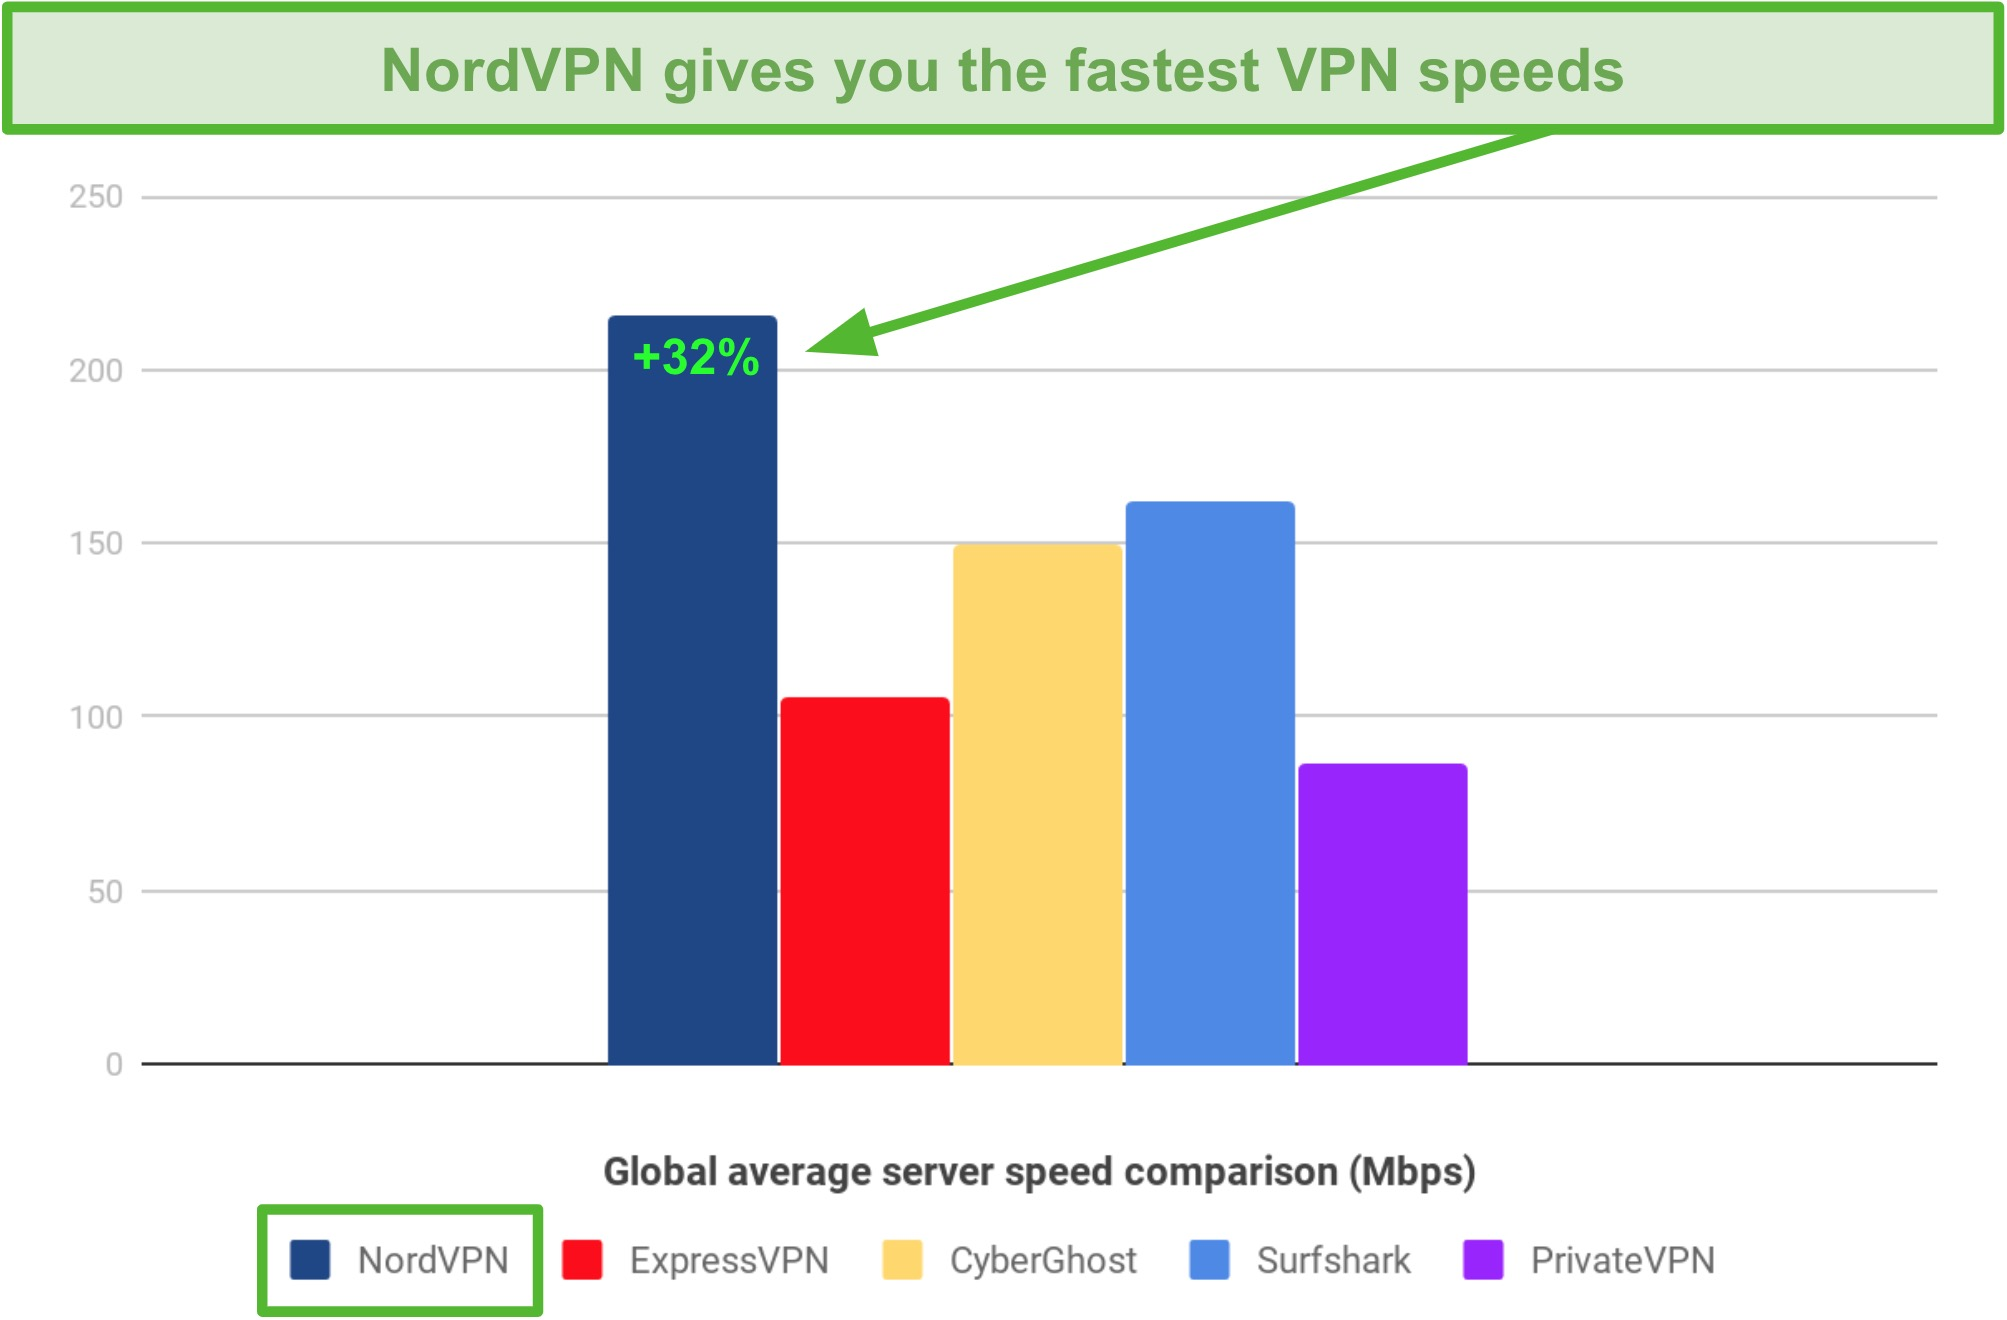 A bar chart showing average speeds and speed differences between NordVPN, ExpressVPN, CyberGhost, Surfshark, and PrivateVPN.